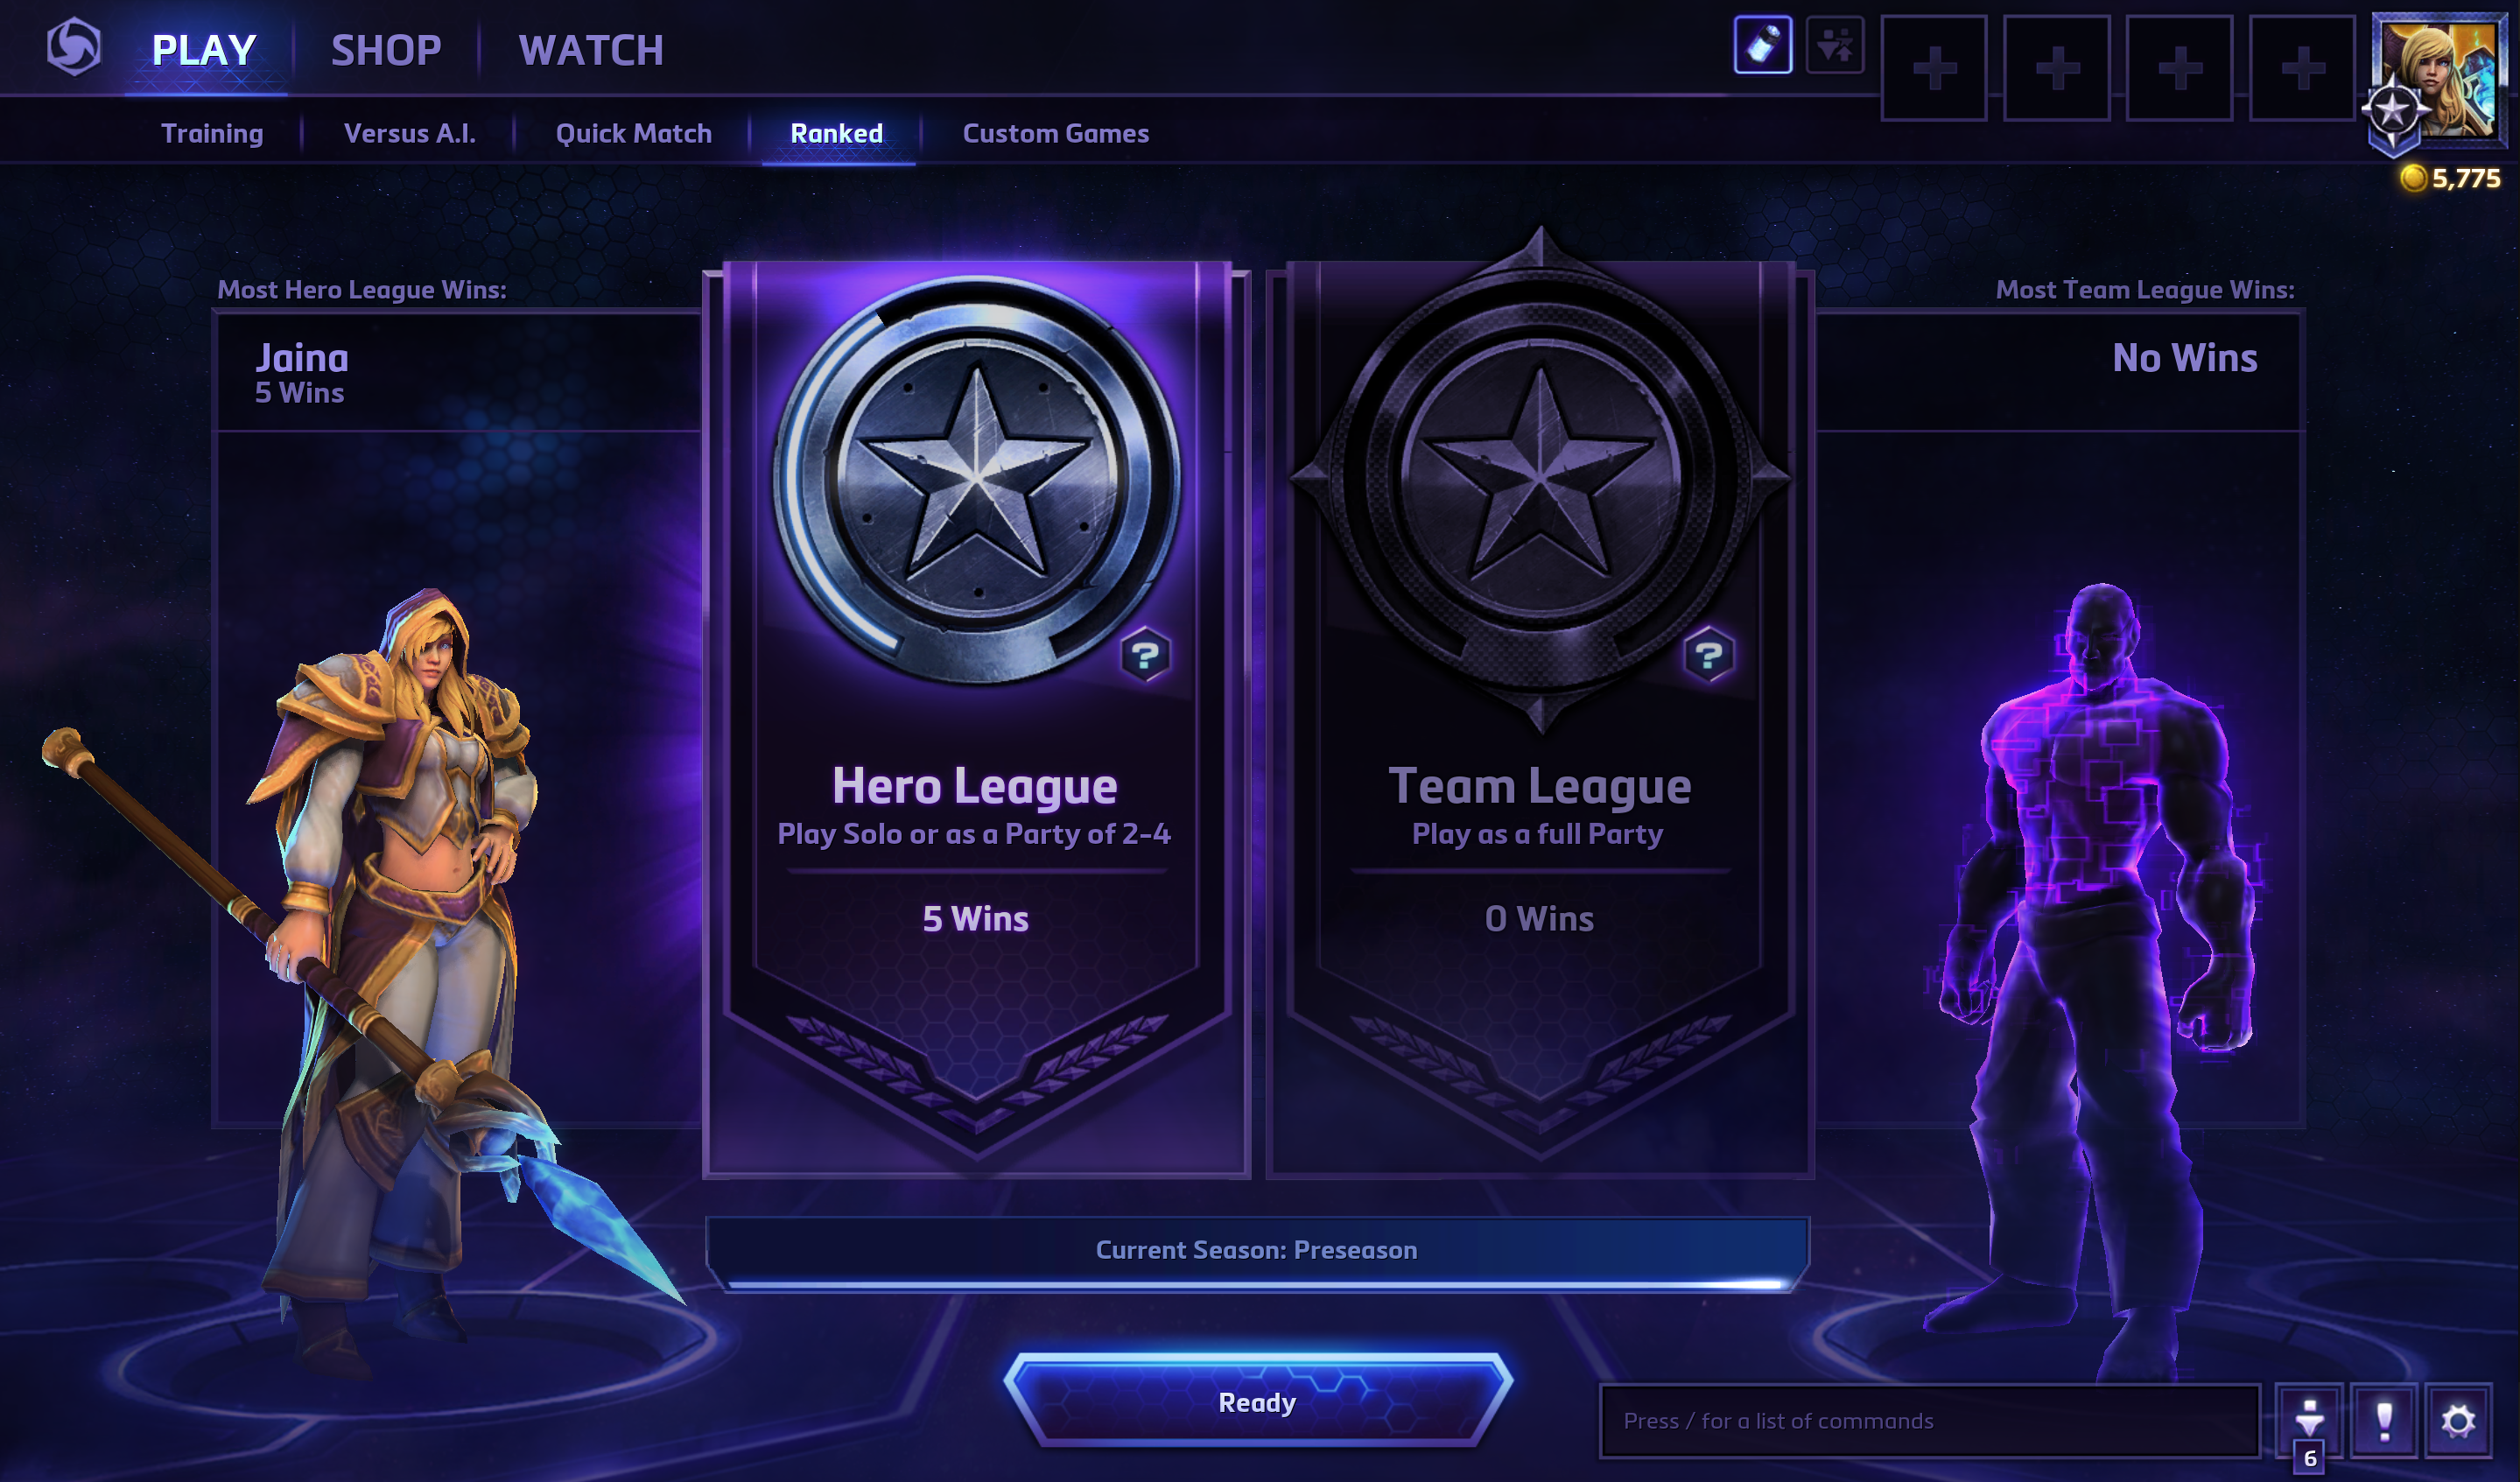 Heroes Of The Storm Blizzard Entertainment Ceo Michael Morhaime On Grandmaster Rank Esports Gendered Skins Solo Queue Mmr Compete And More We've examined more than than 125,000,000 games!. blizzard entertainment ceo michael